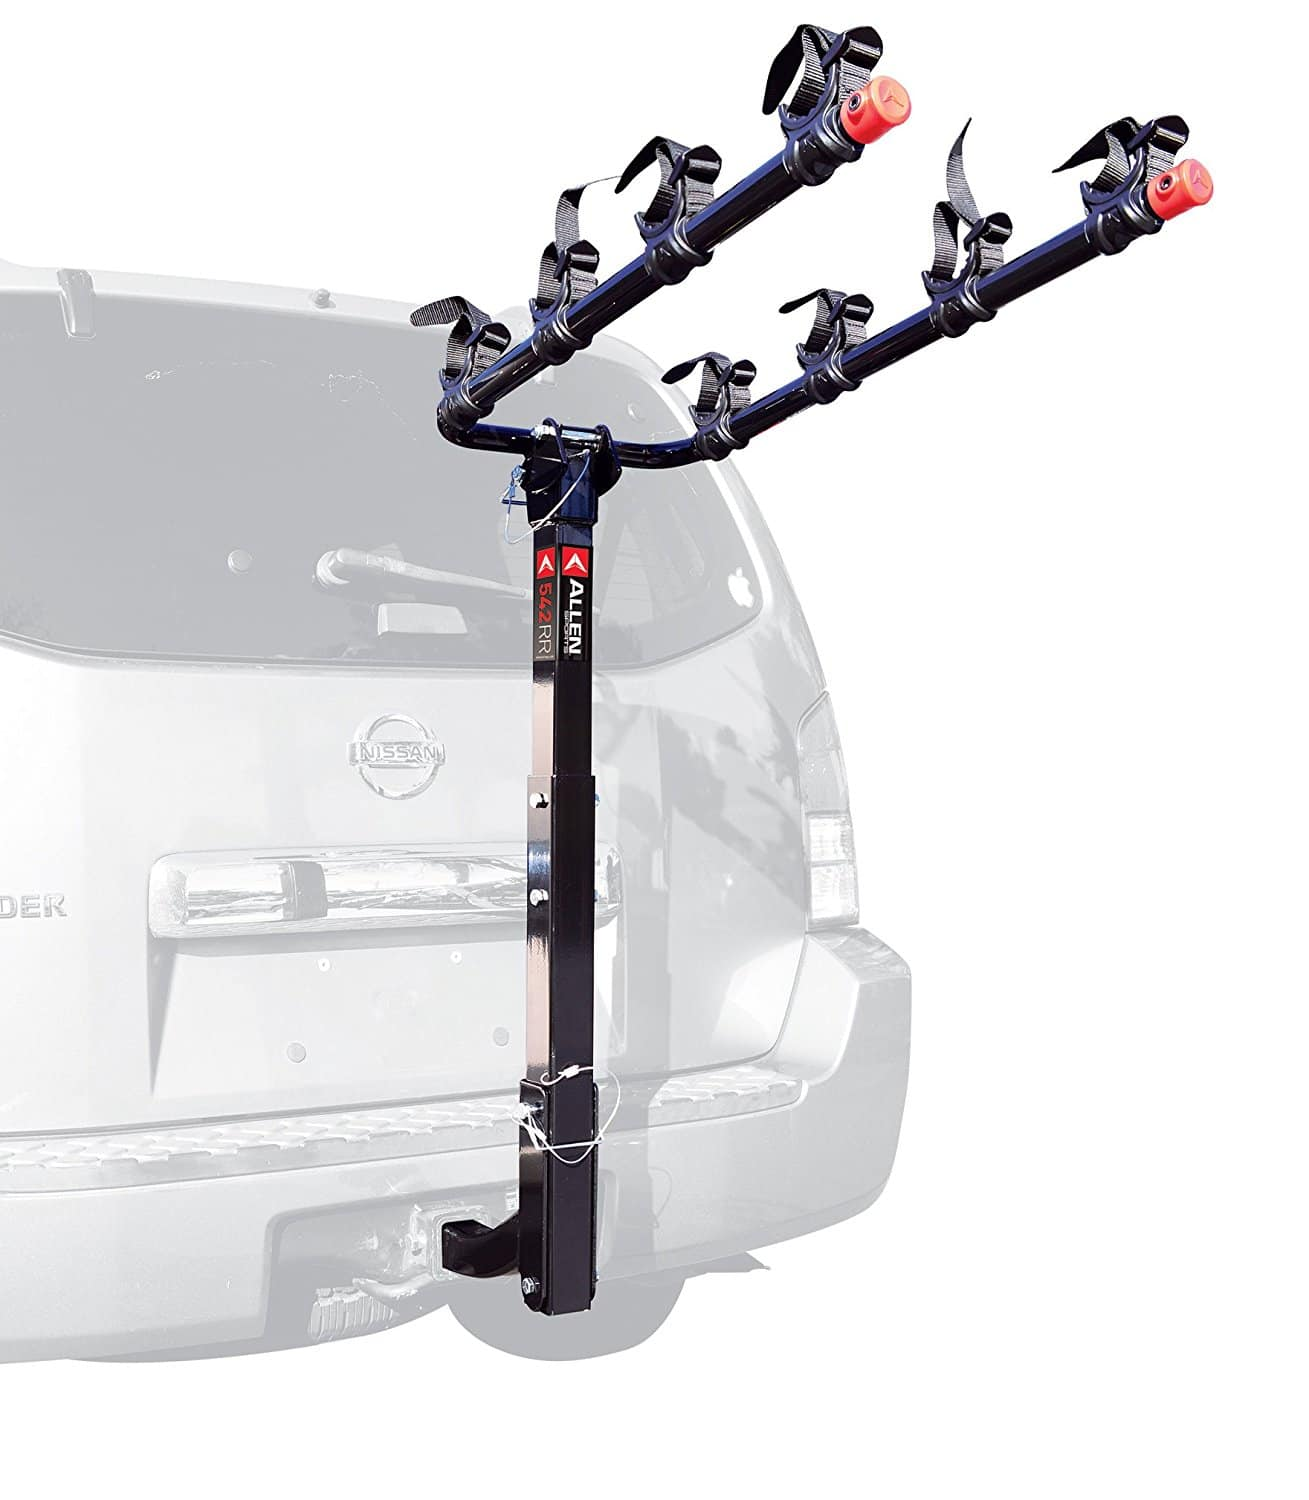 Allen Sports Deluxe 4-Bike Hitch Mount Rack with 2-Inch Receiver $56.49